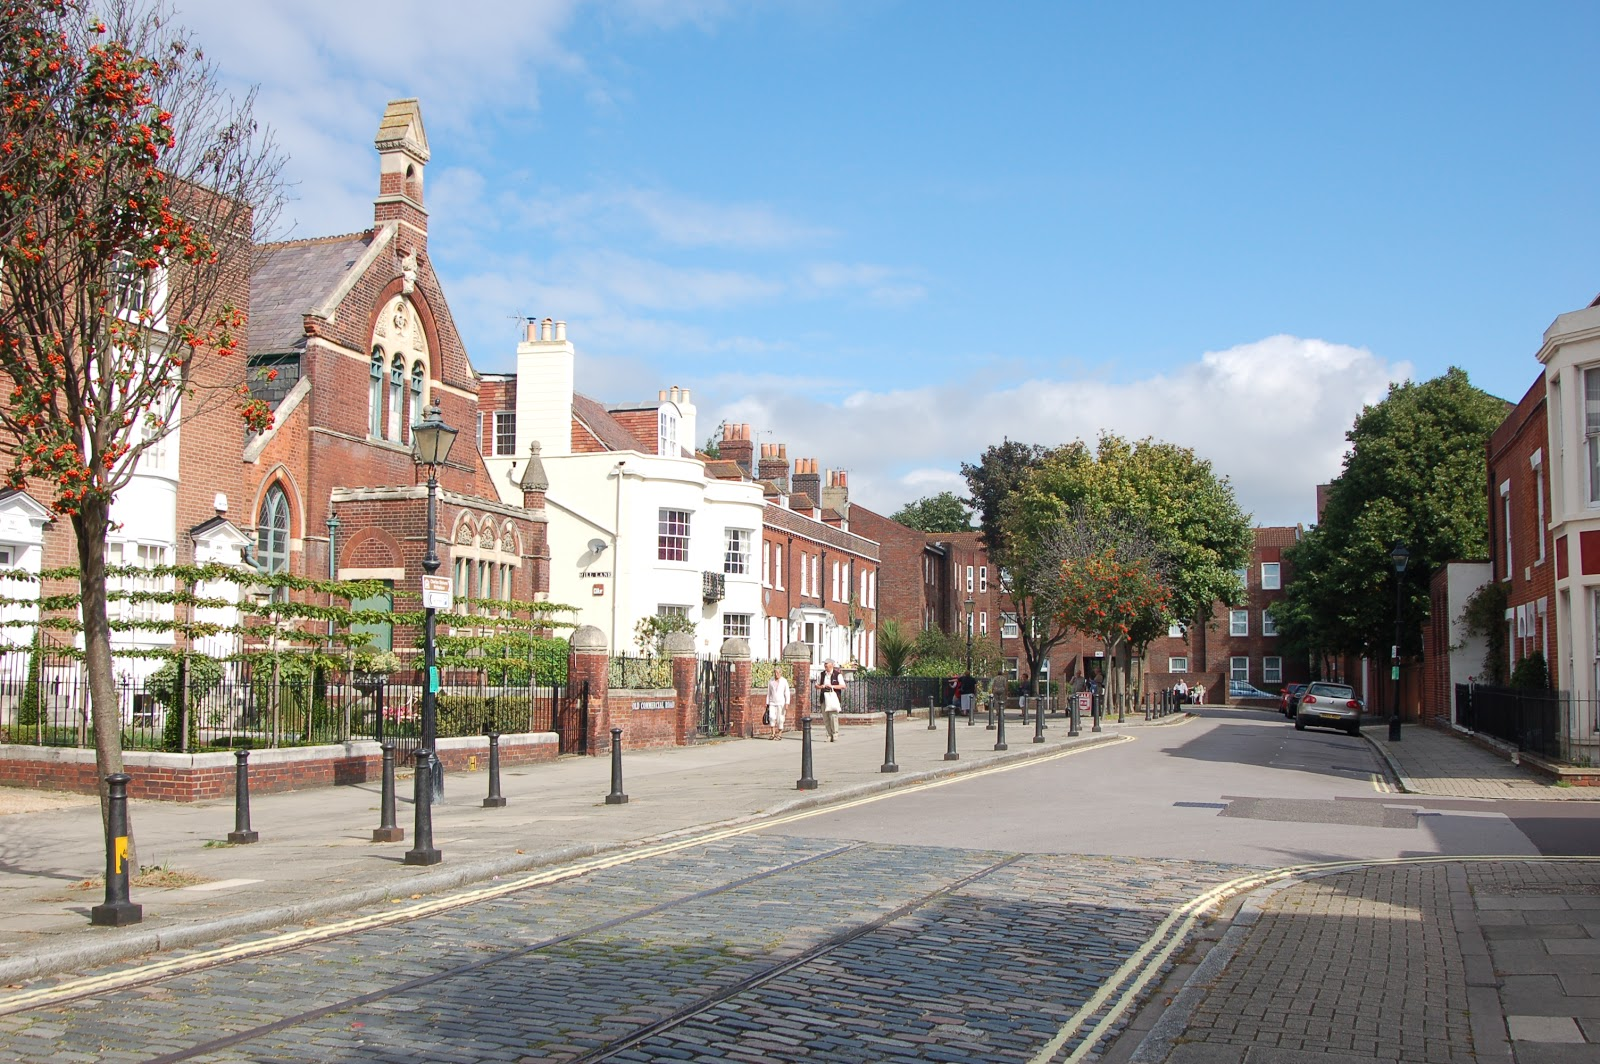 baugh s blog photo essay the homes of charles dickens old commercial road in portsmouth dickens s birthplace museum near the end on the left